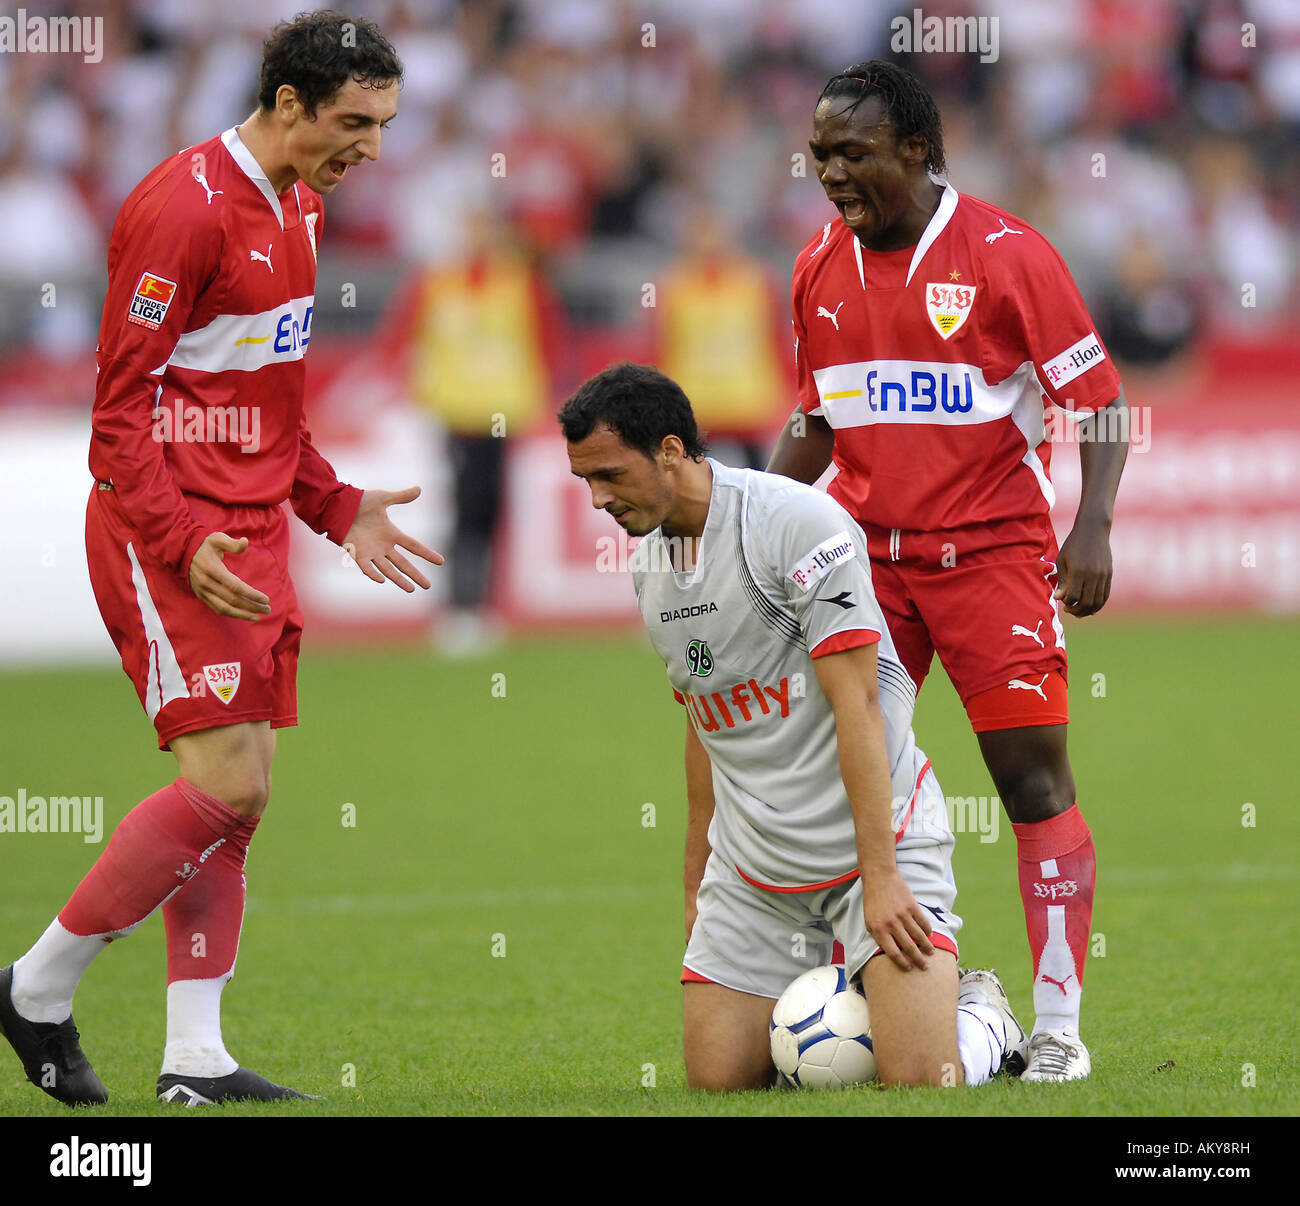 Roberto HILBERT VfB Stuttgart (left) and Arthur BOKA (right) shouting at Altin LALA Hannover 96 (middle) - Stock Image